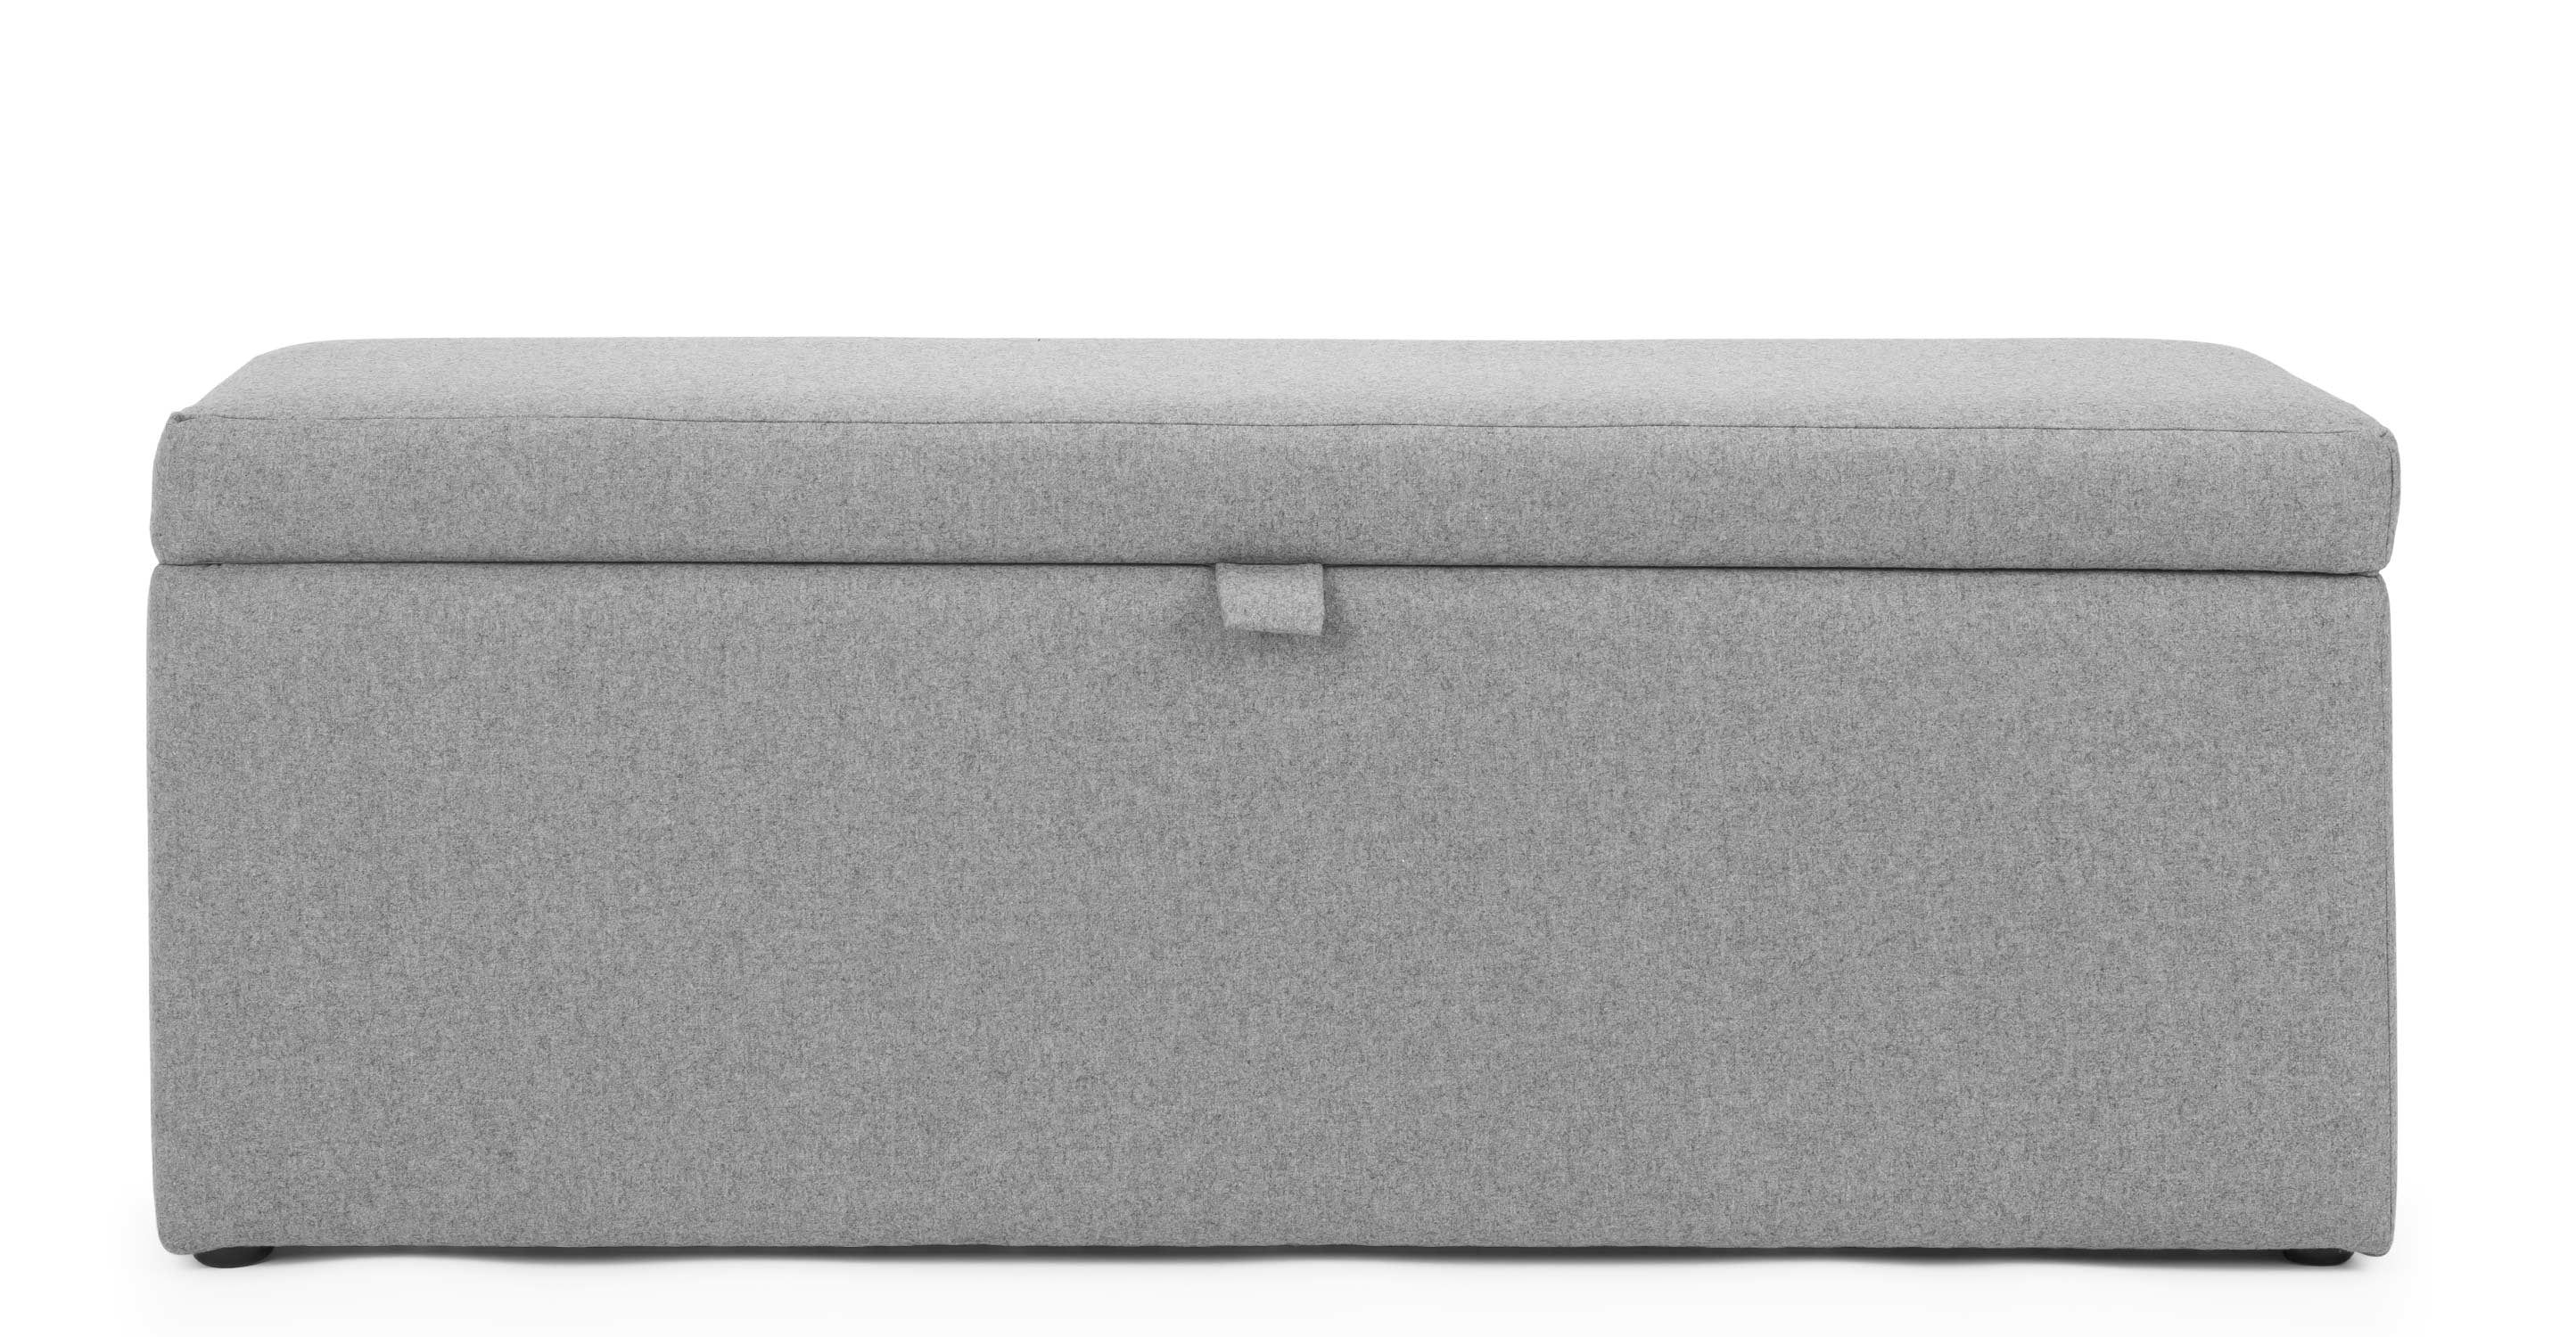 Bettsofa Schubiger Capri Upholstered Storage Bench Wolf Grey Wool Mix Designer